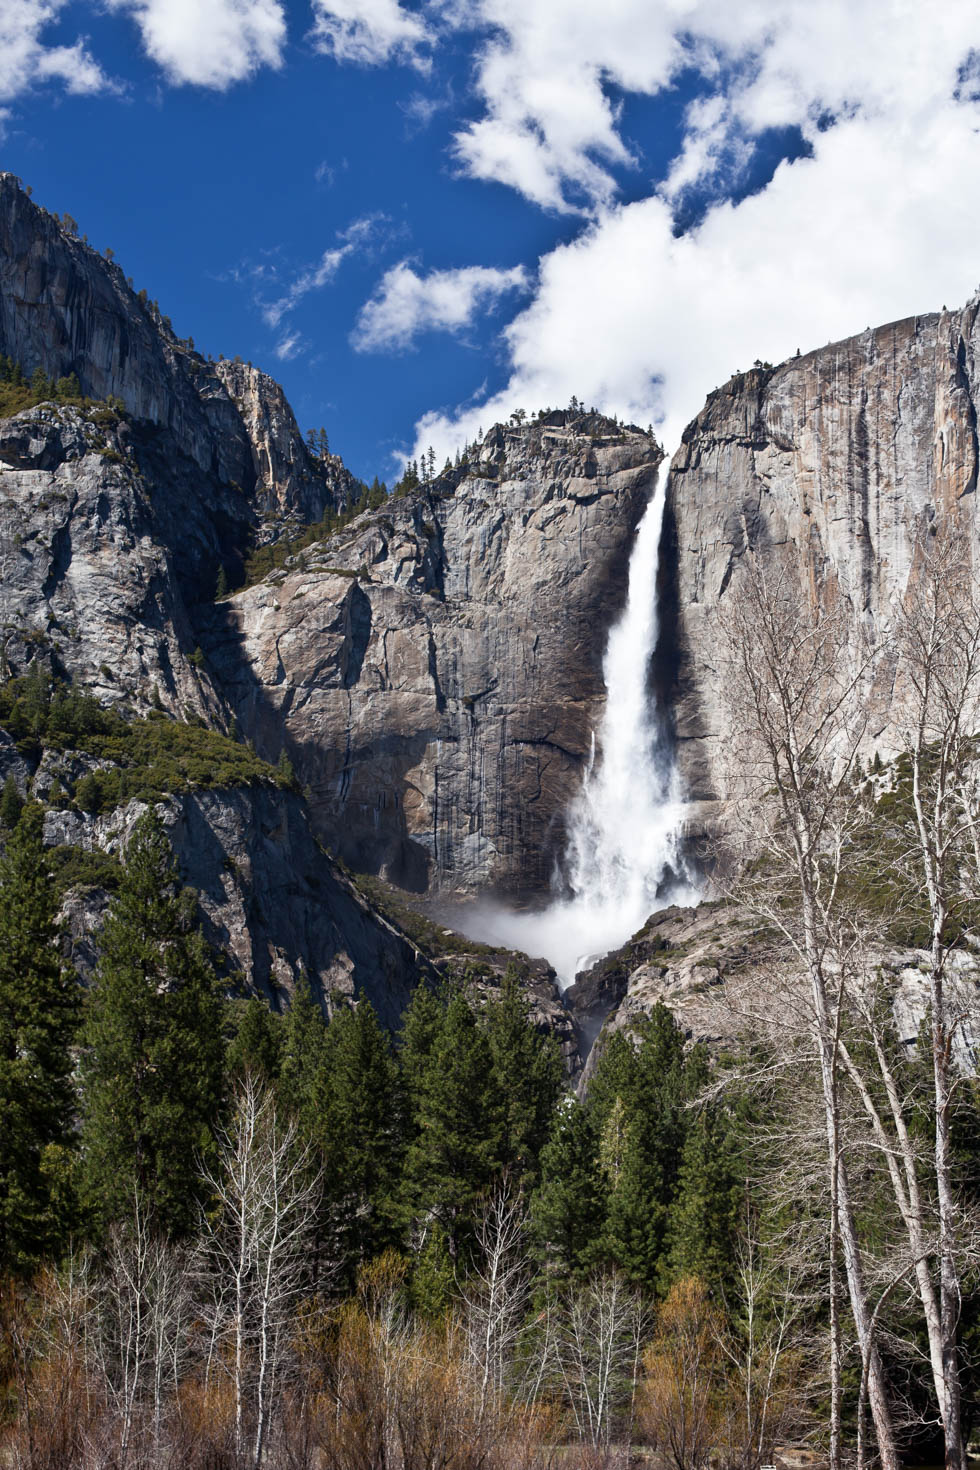 Shutterstock Approval Article - Soft Water at Yosemite National Park #vezzaniphotography